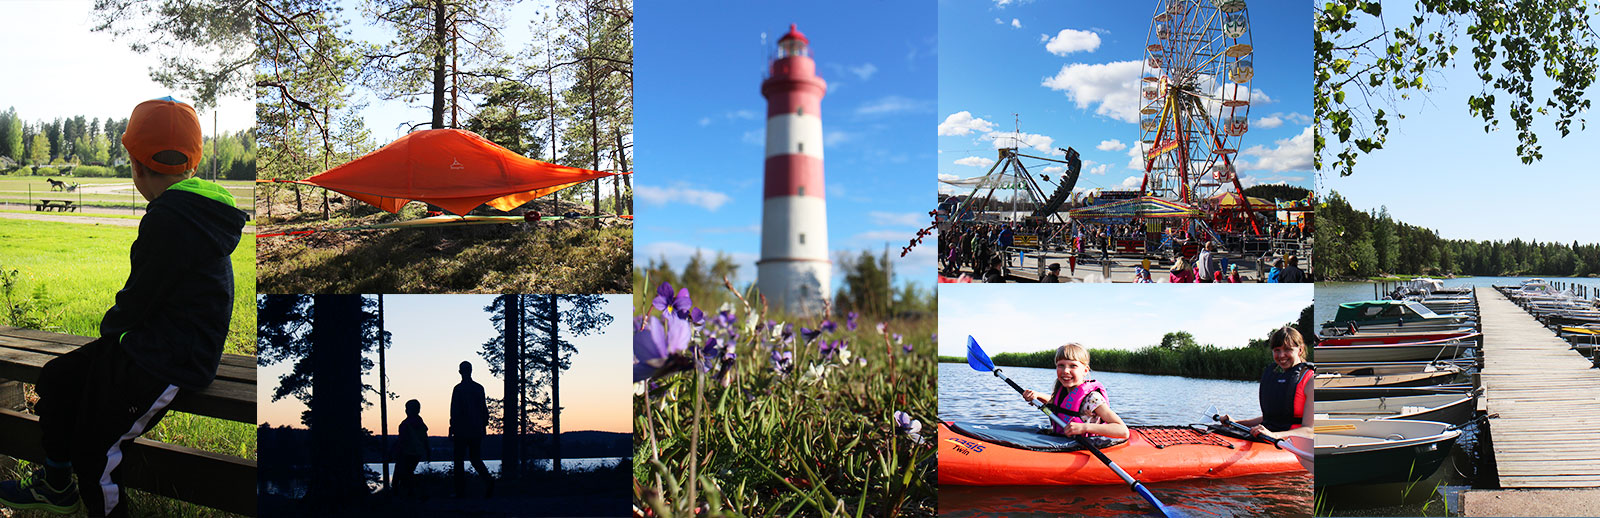 Fun things to do in Finland on Summer holiday